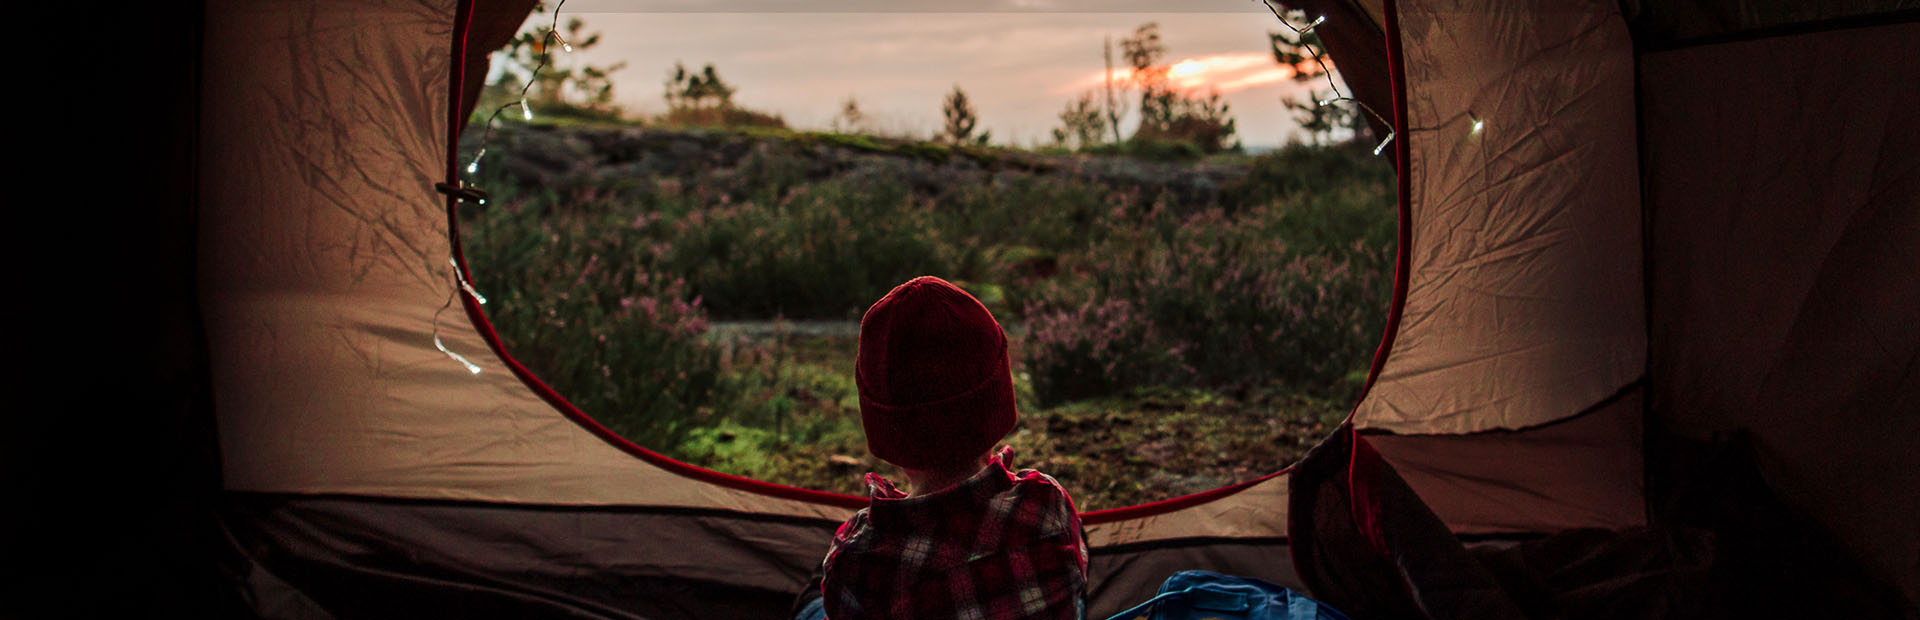 A child sitting in a tent watching the sun setting behind the forest.